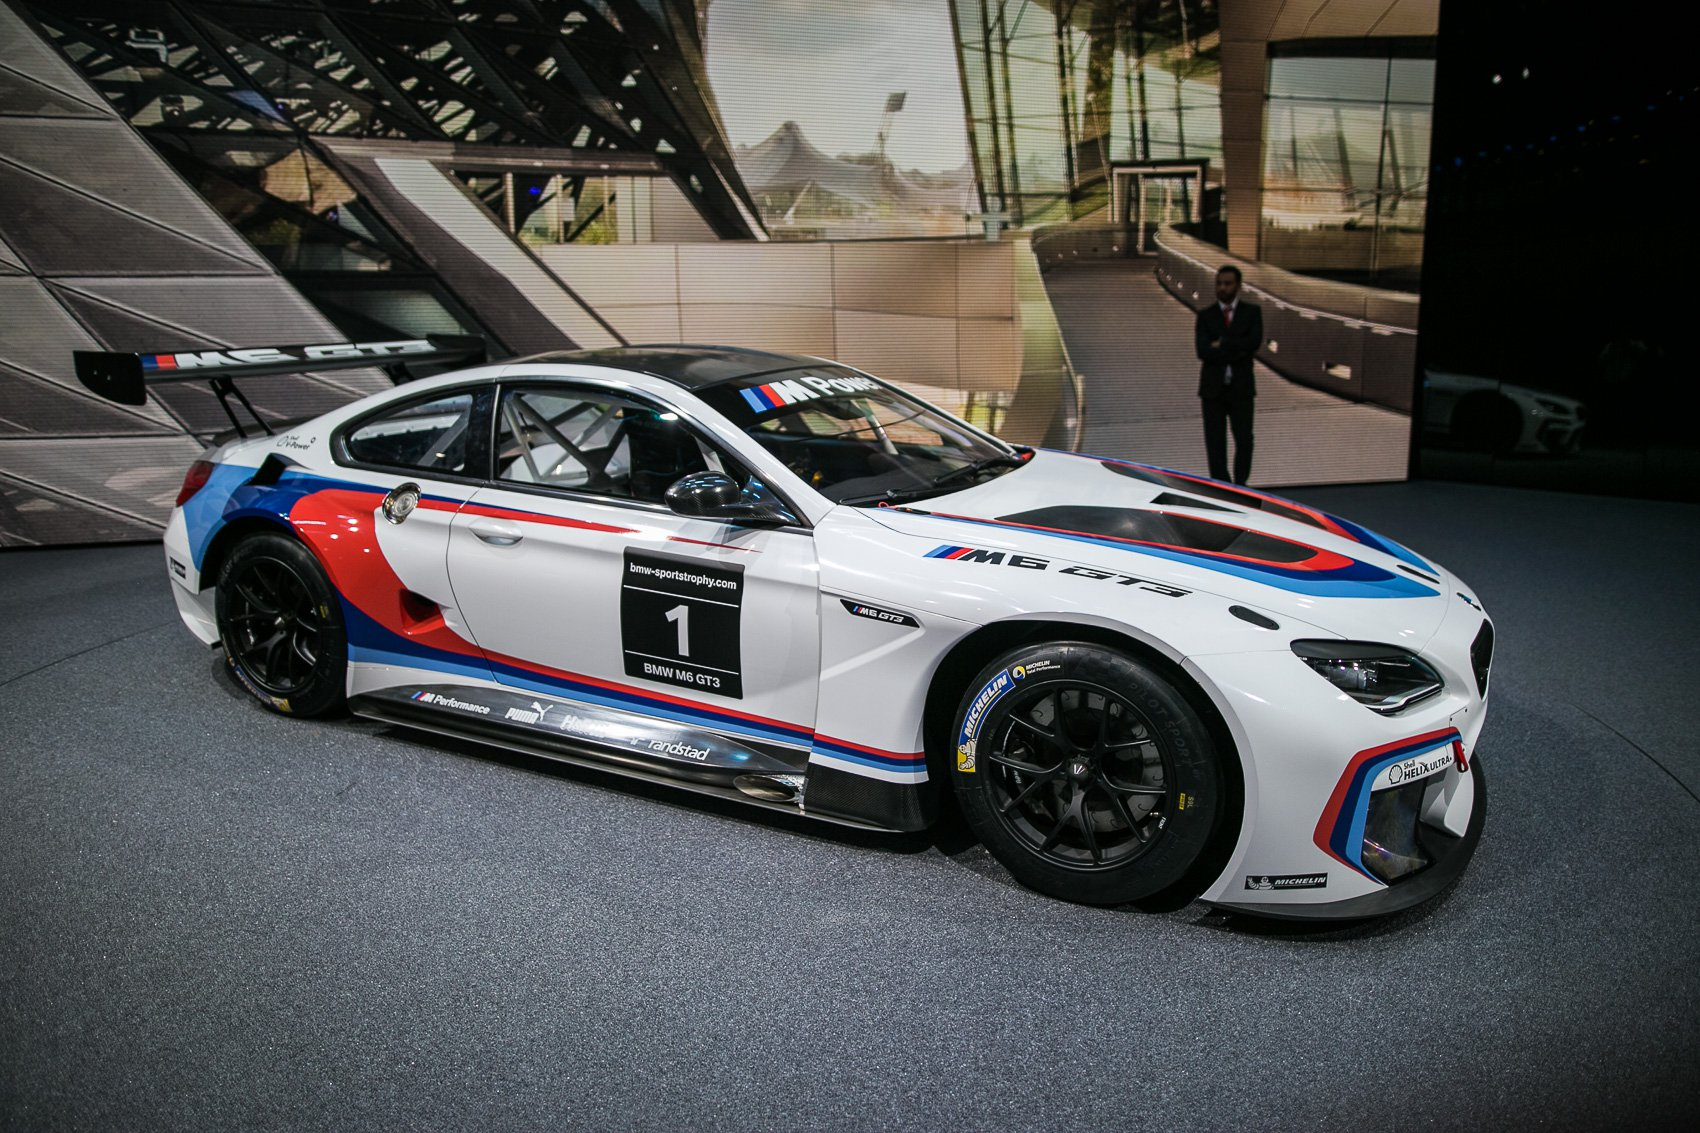 New Bmw Car Racing Games